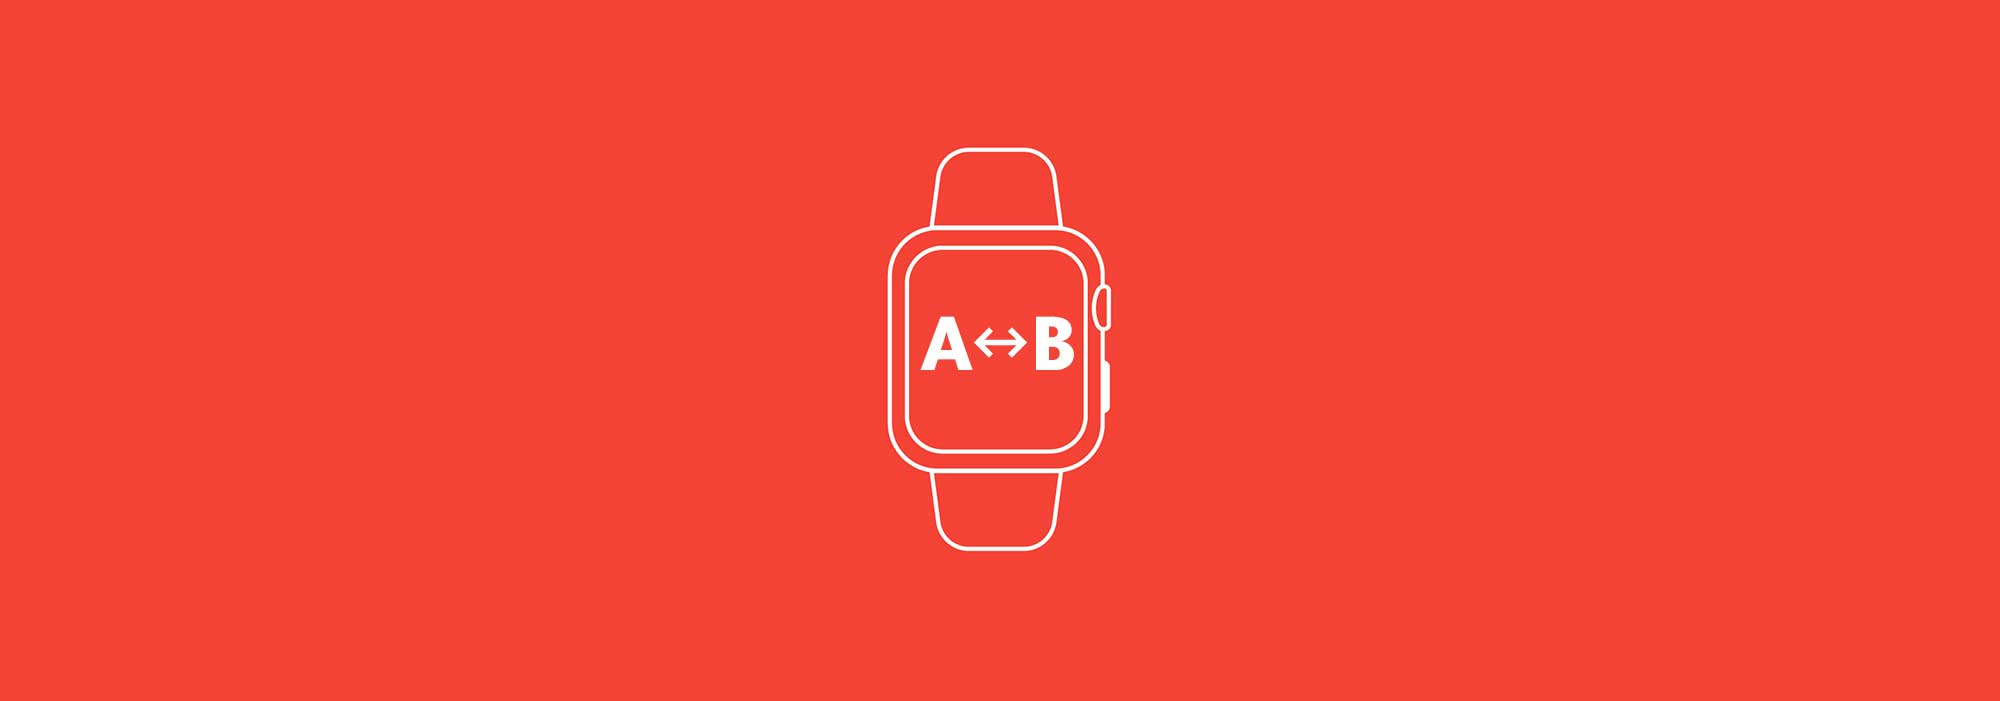 Watch app design